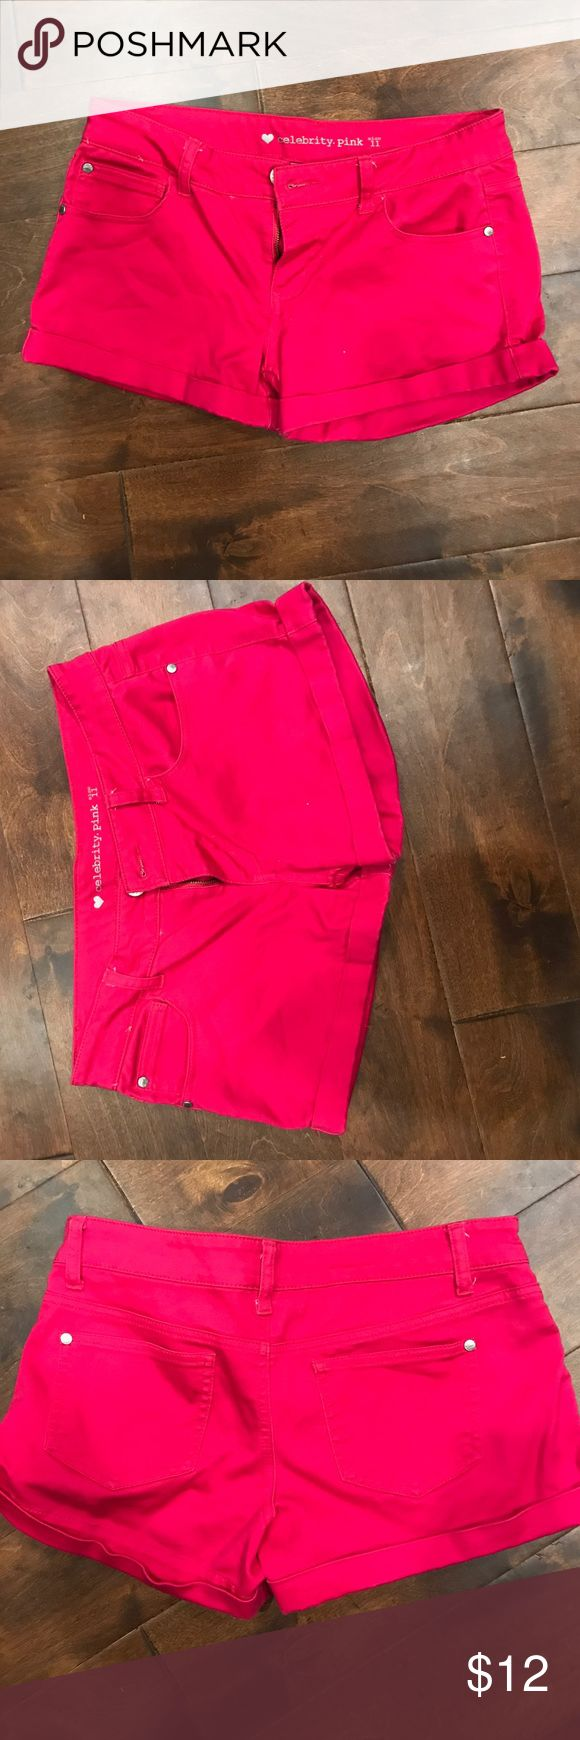 Hot Pink Shorts Never worn hot pink shorts!! Size 11 in juniors! Stretchy and soft material!! Great for the spring and summer! Celebrity Pink Shorts